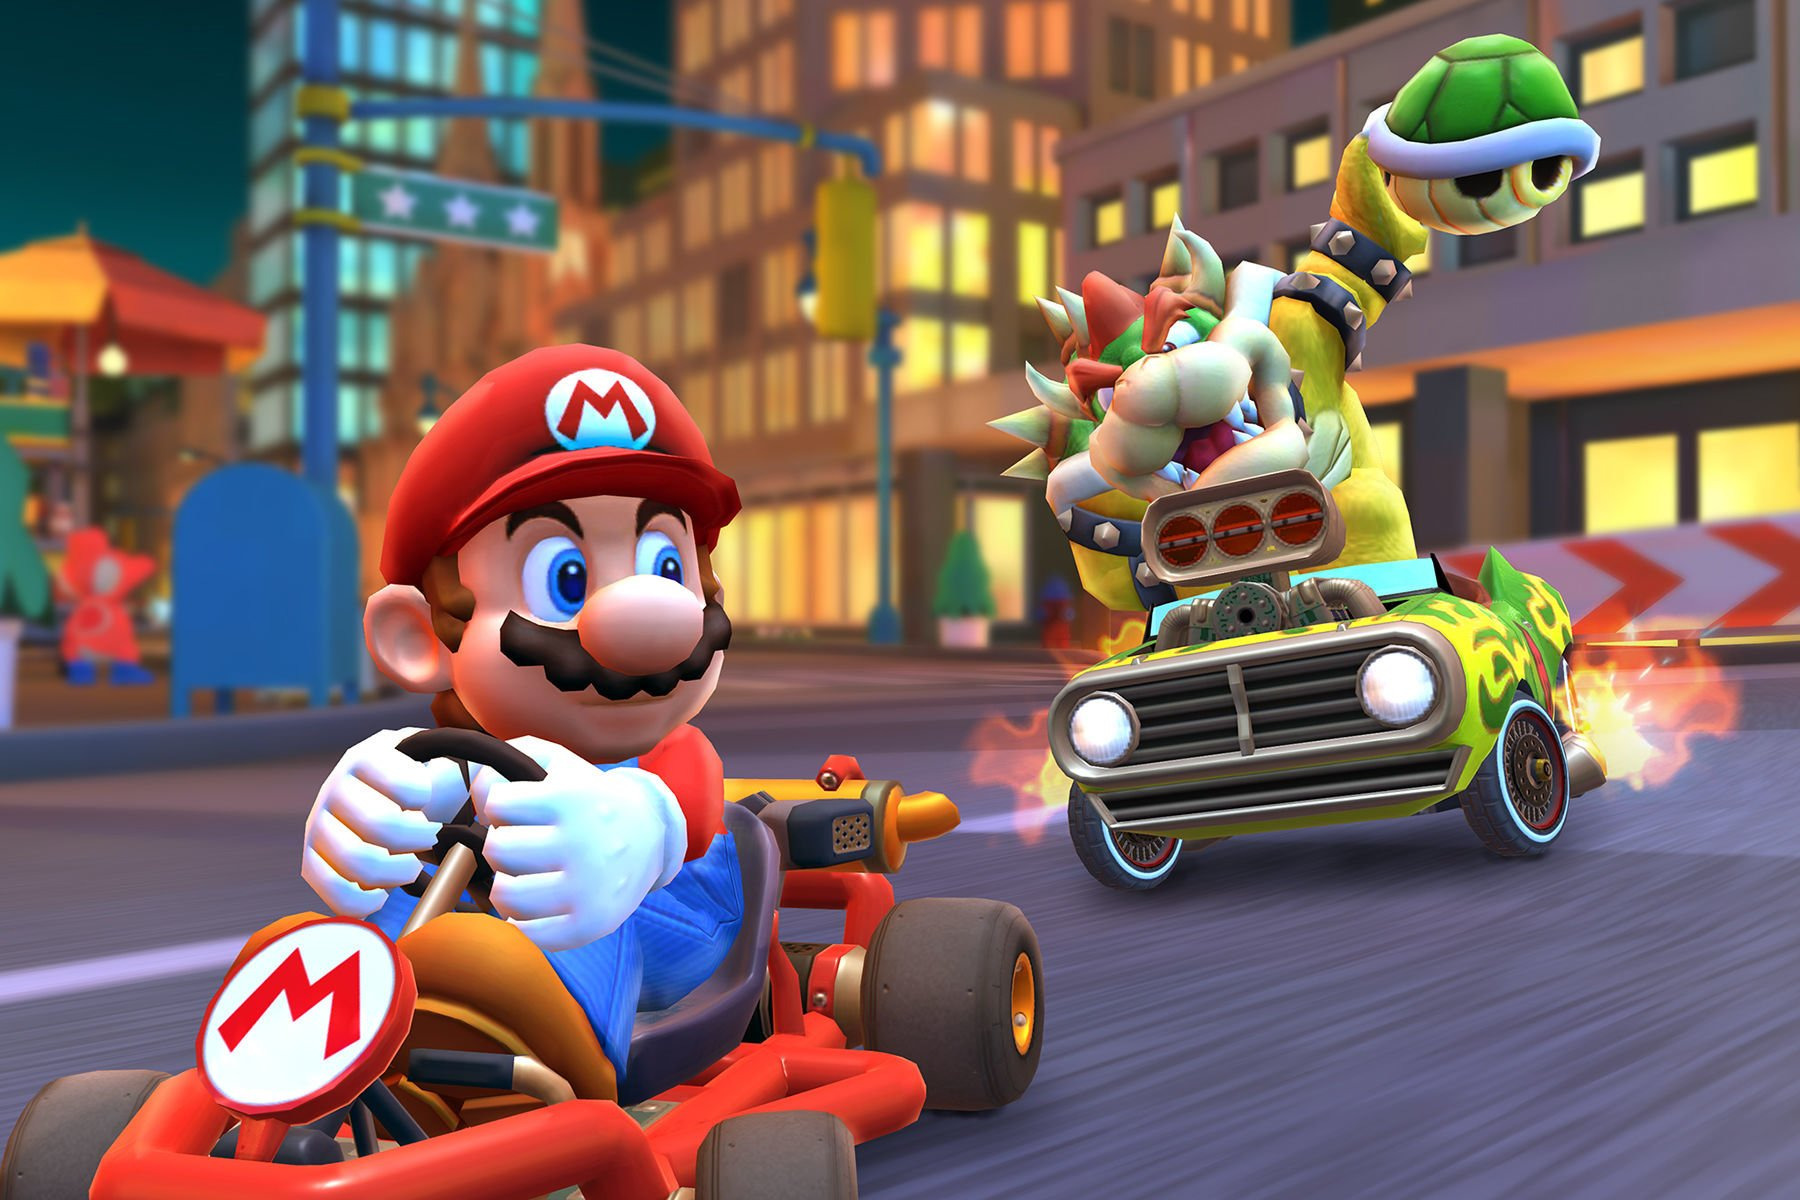 10 Best Gift Ideas For Mario Kart Fans